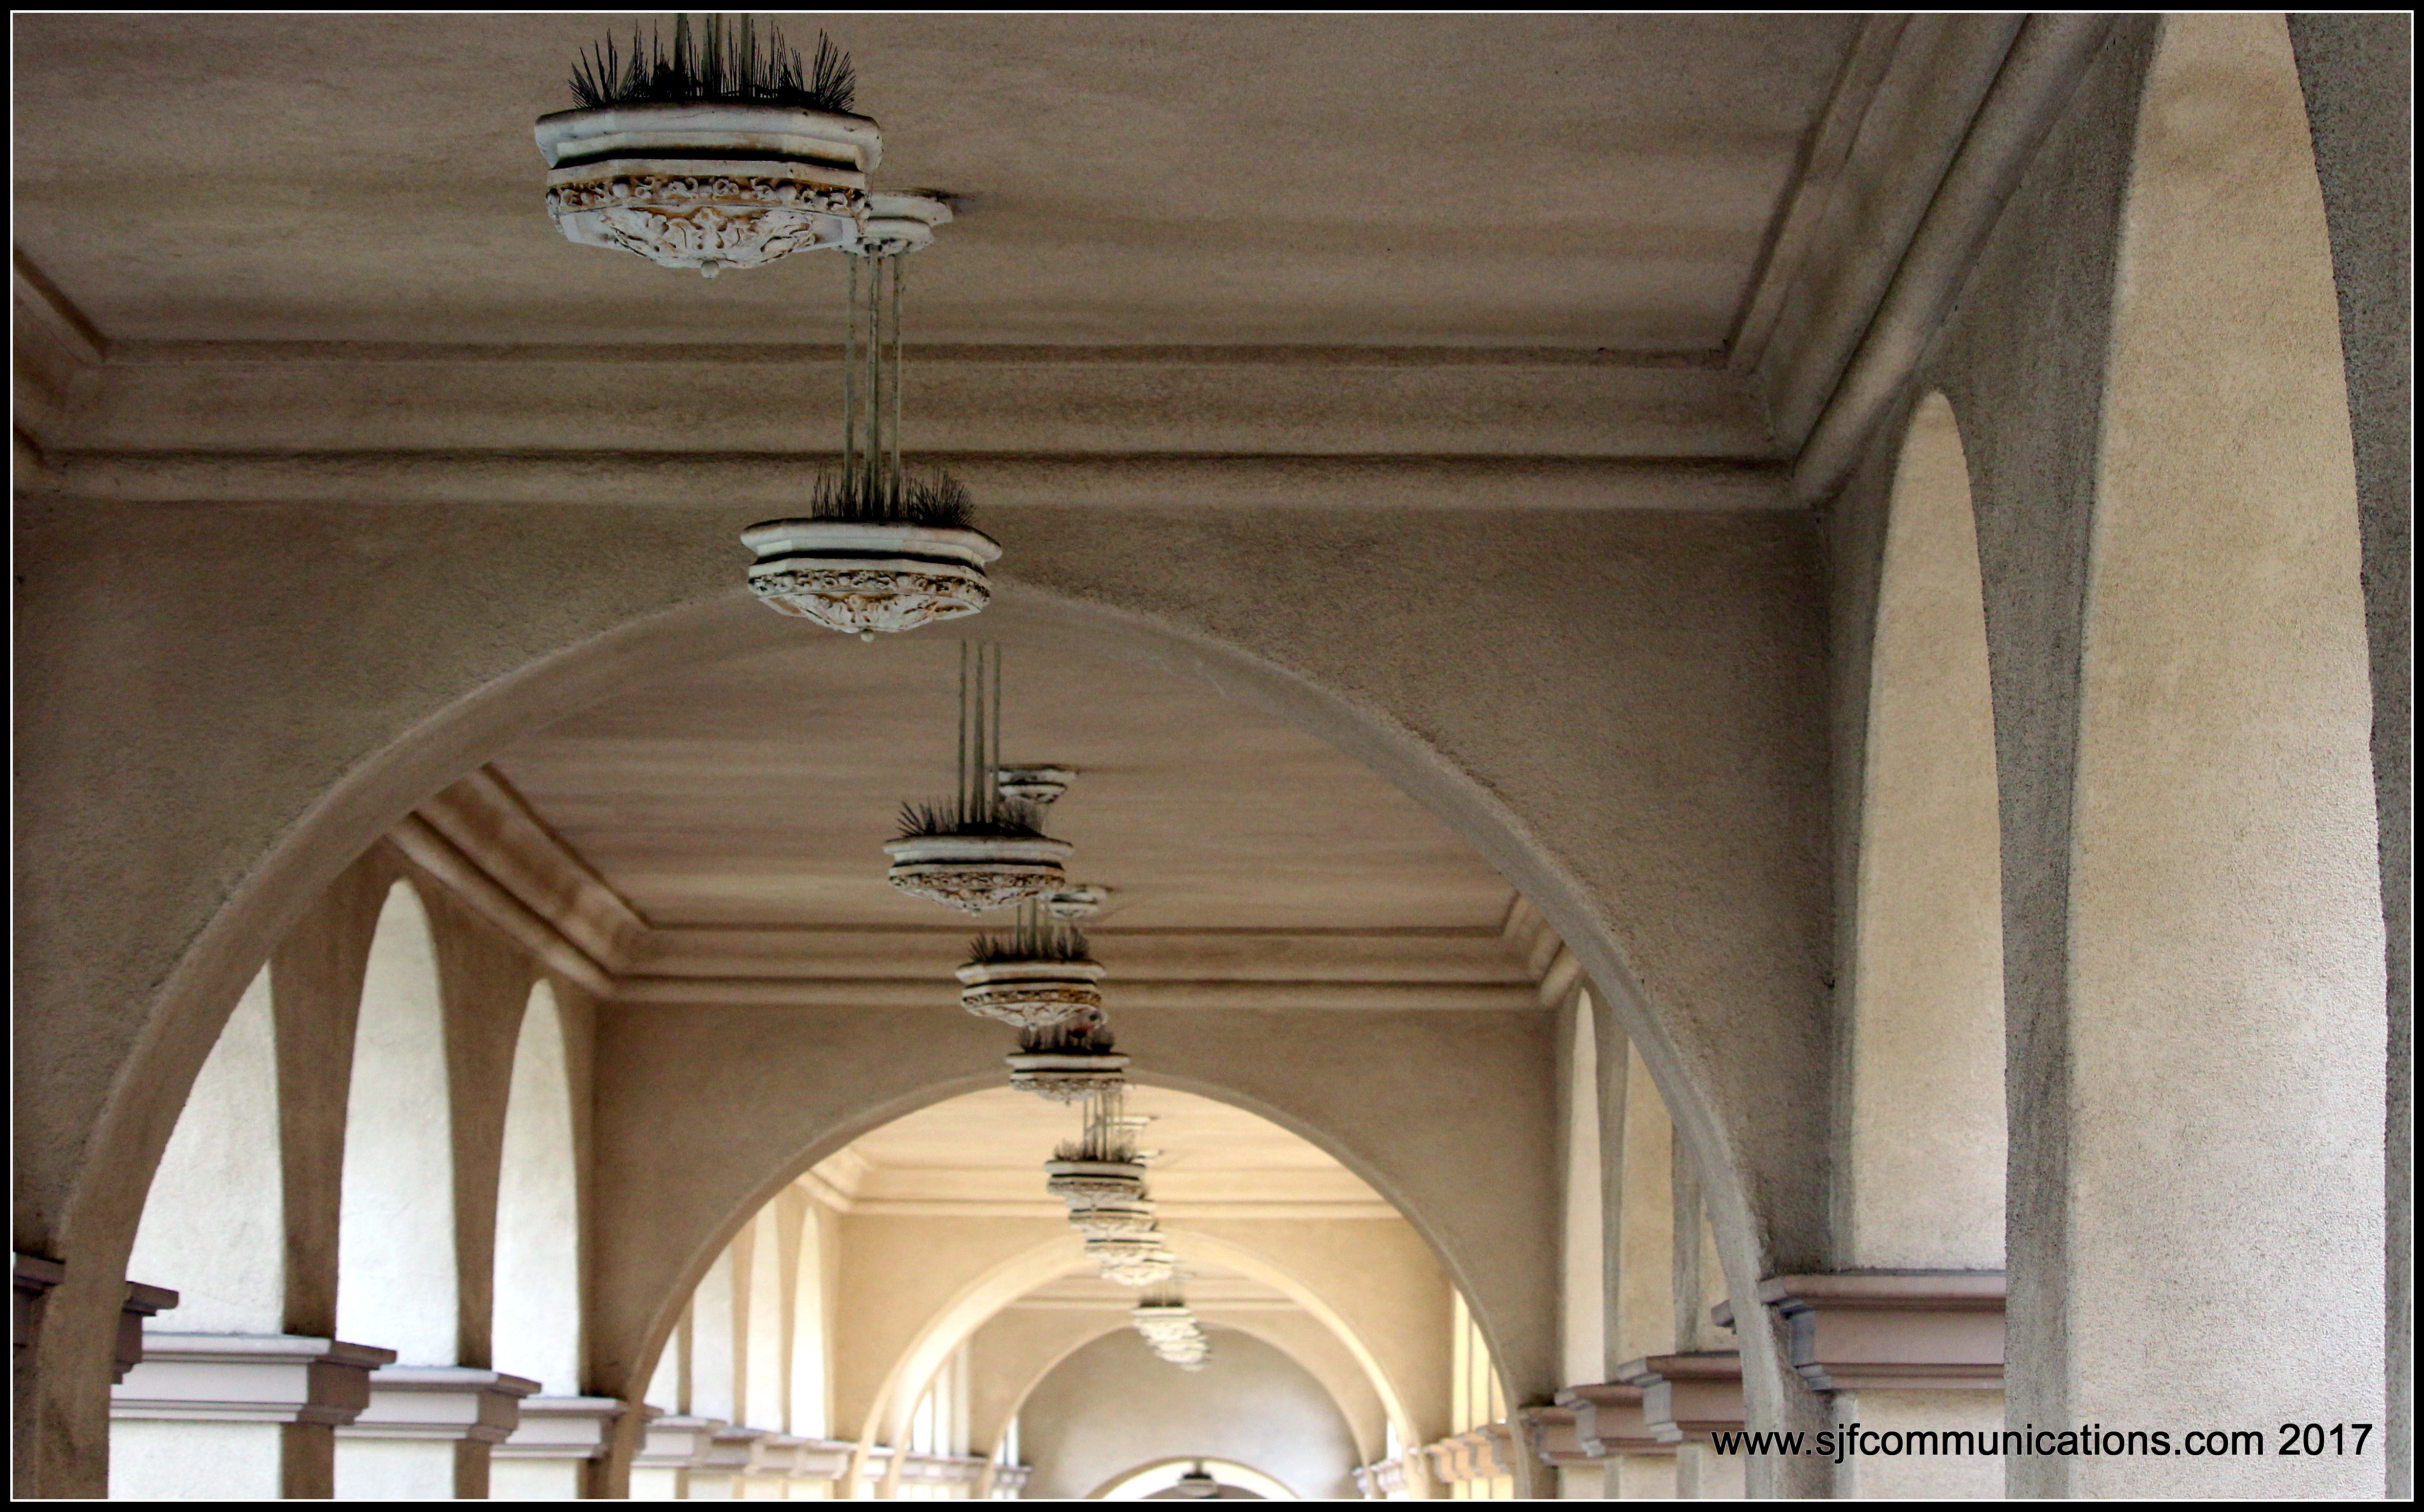 Architecture at Balboa Park, Photos by SJF Communications